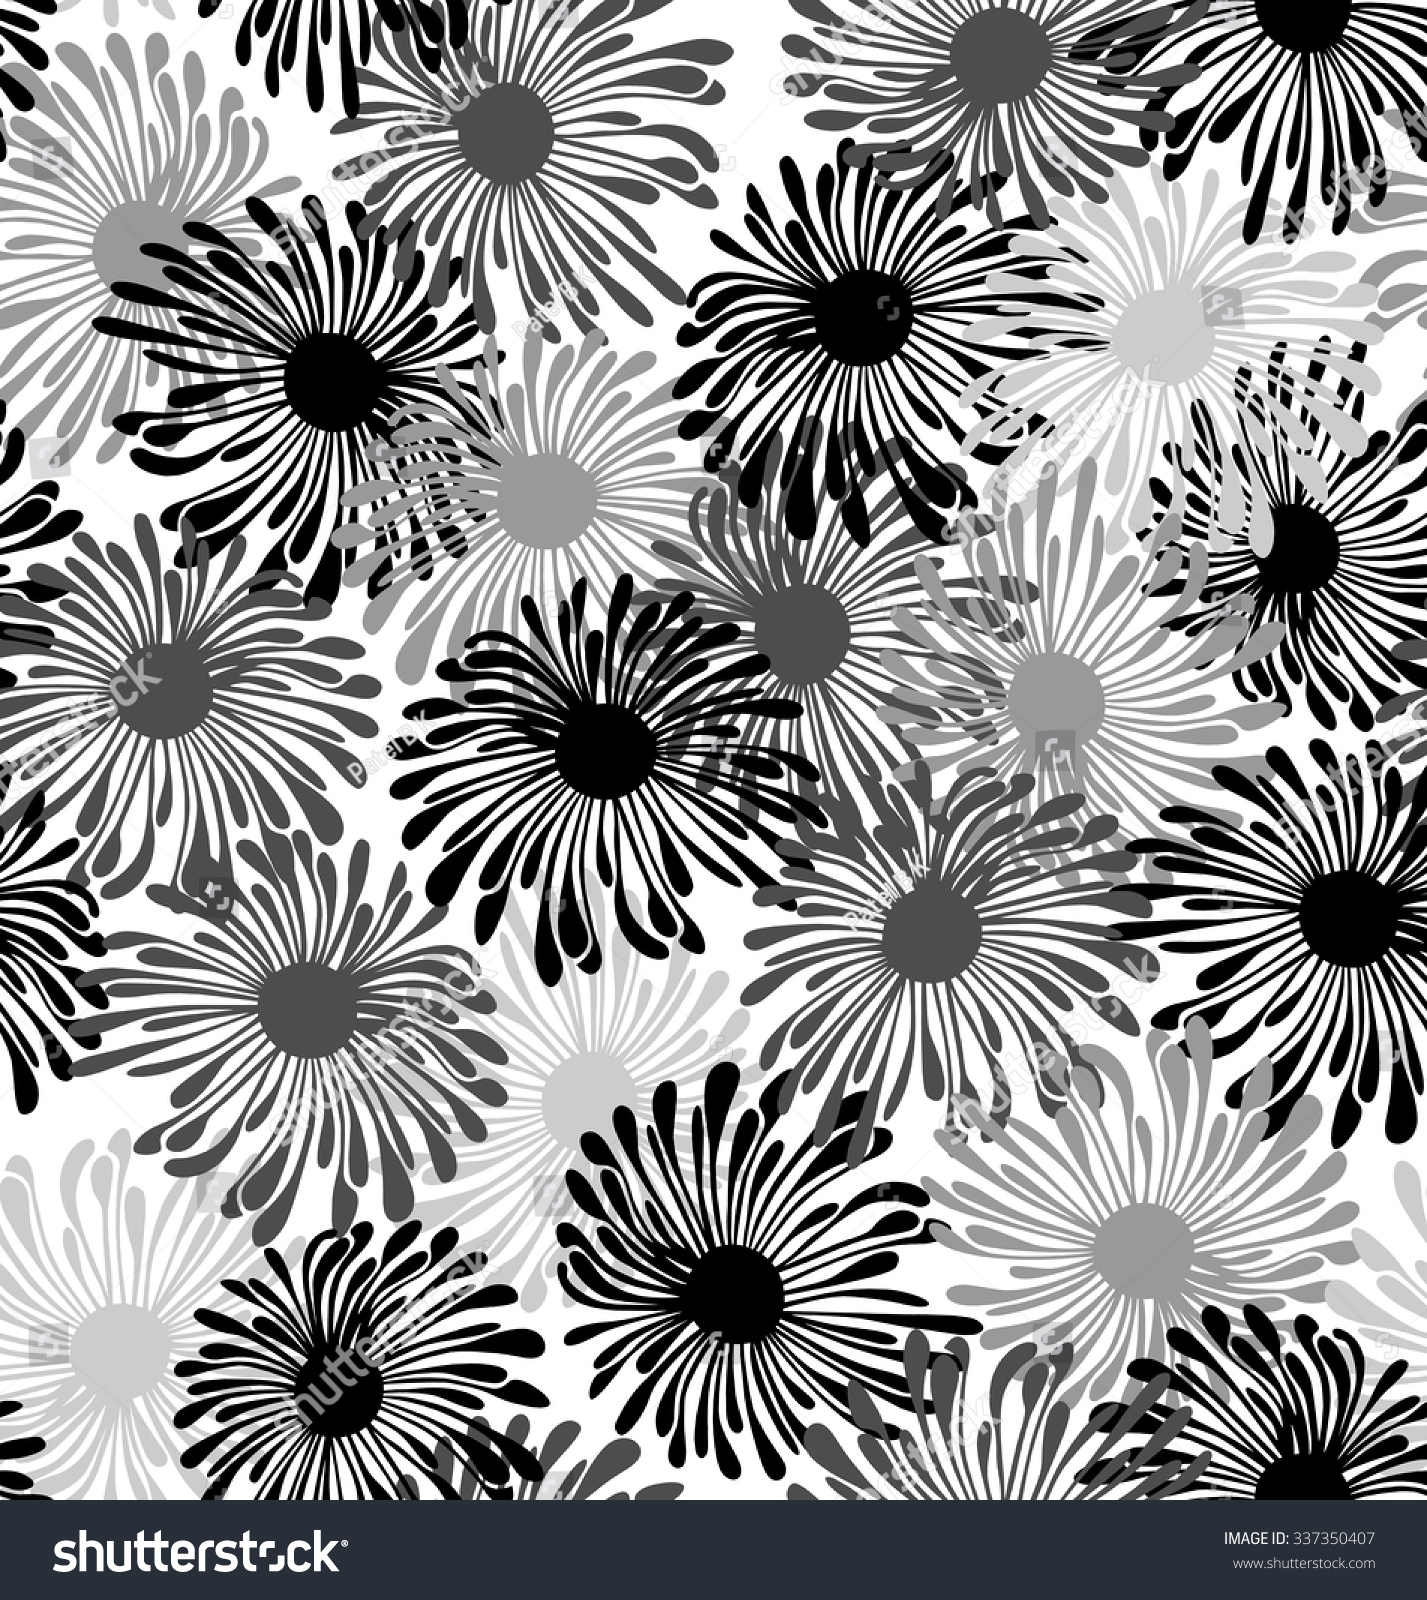 Seamless Black Silver Floral Wallpaper Royalty Free Stock Image